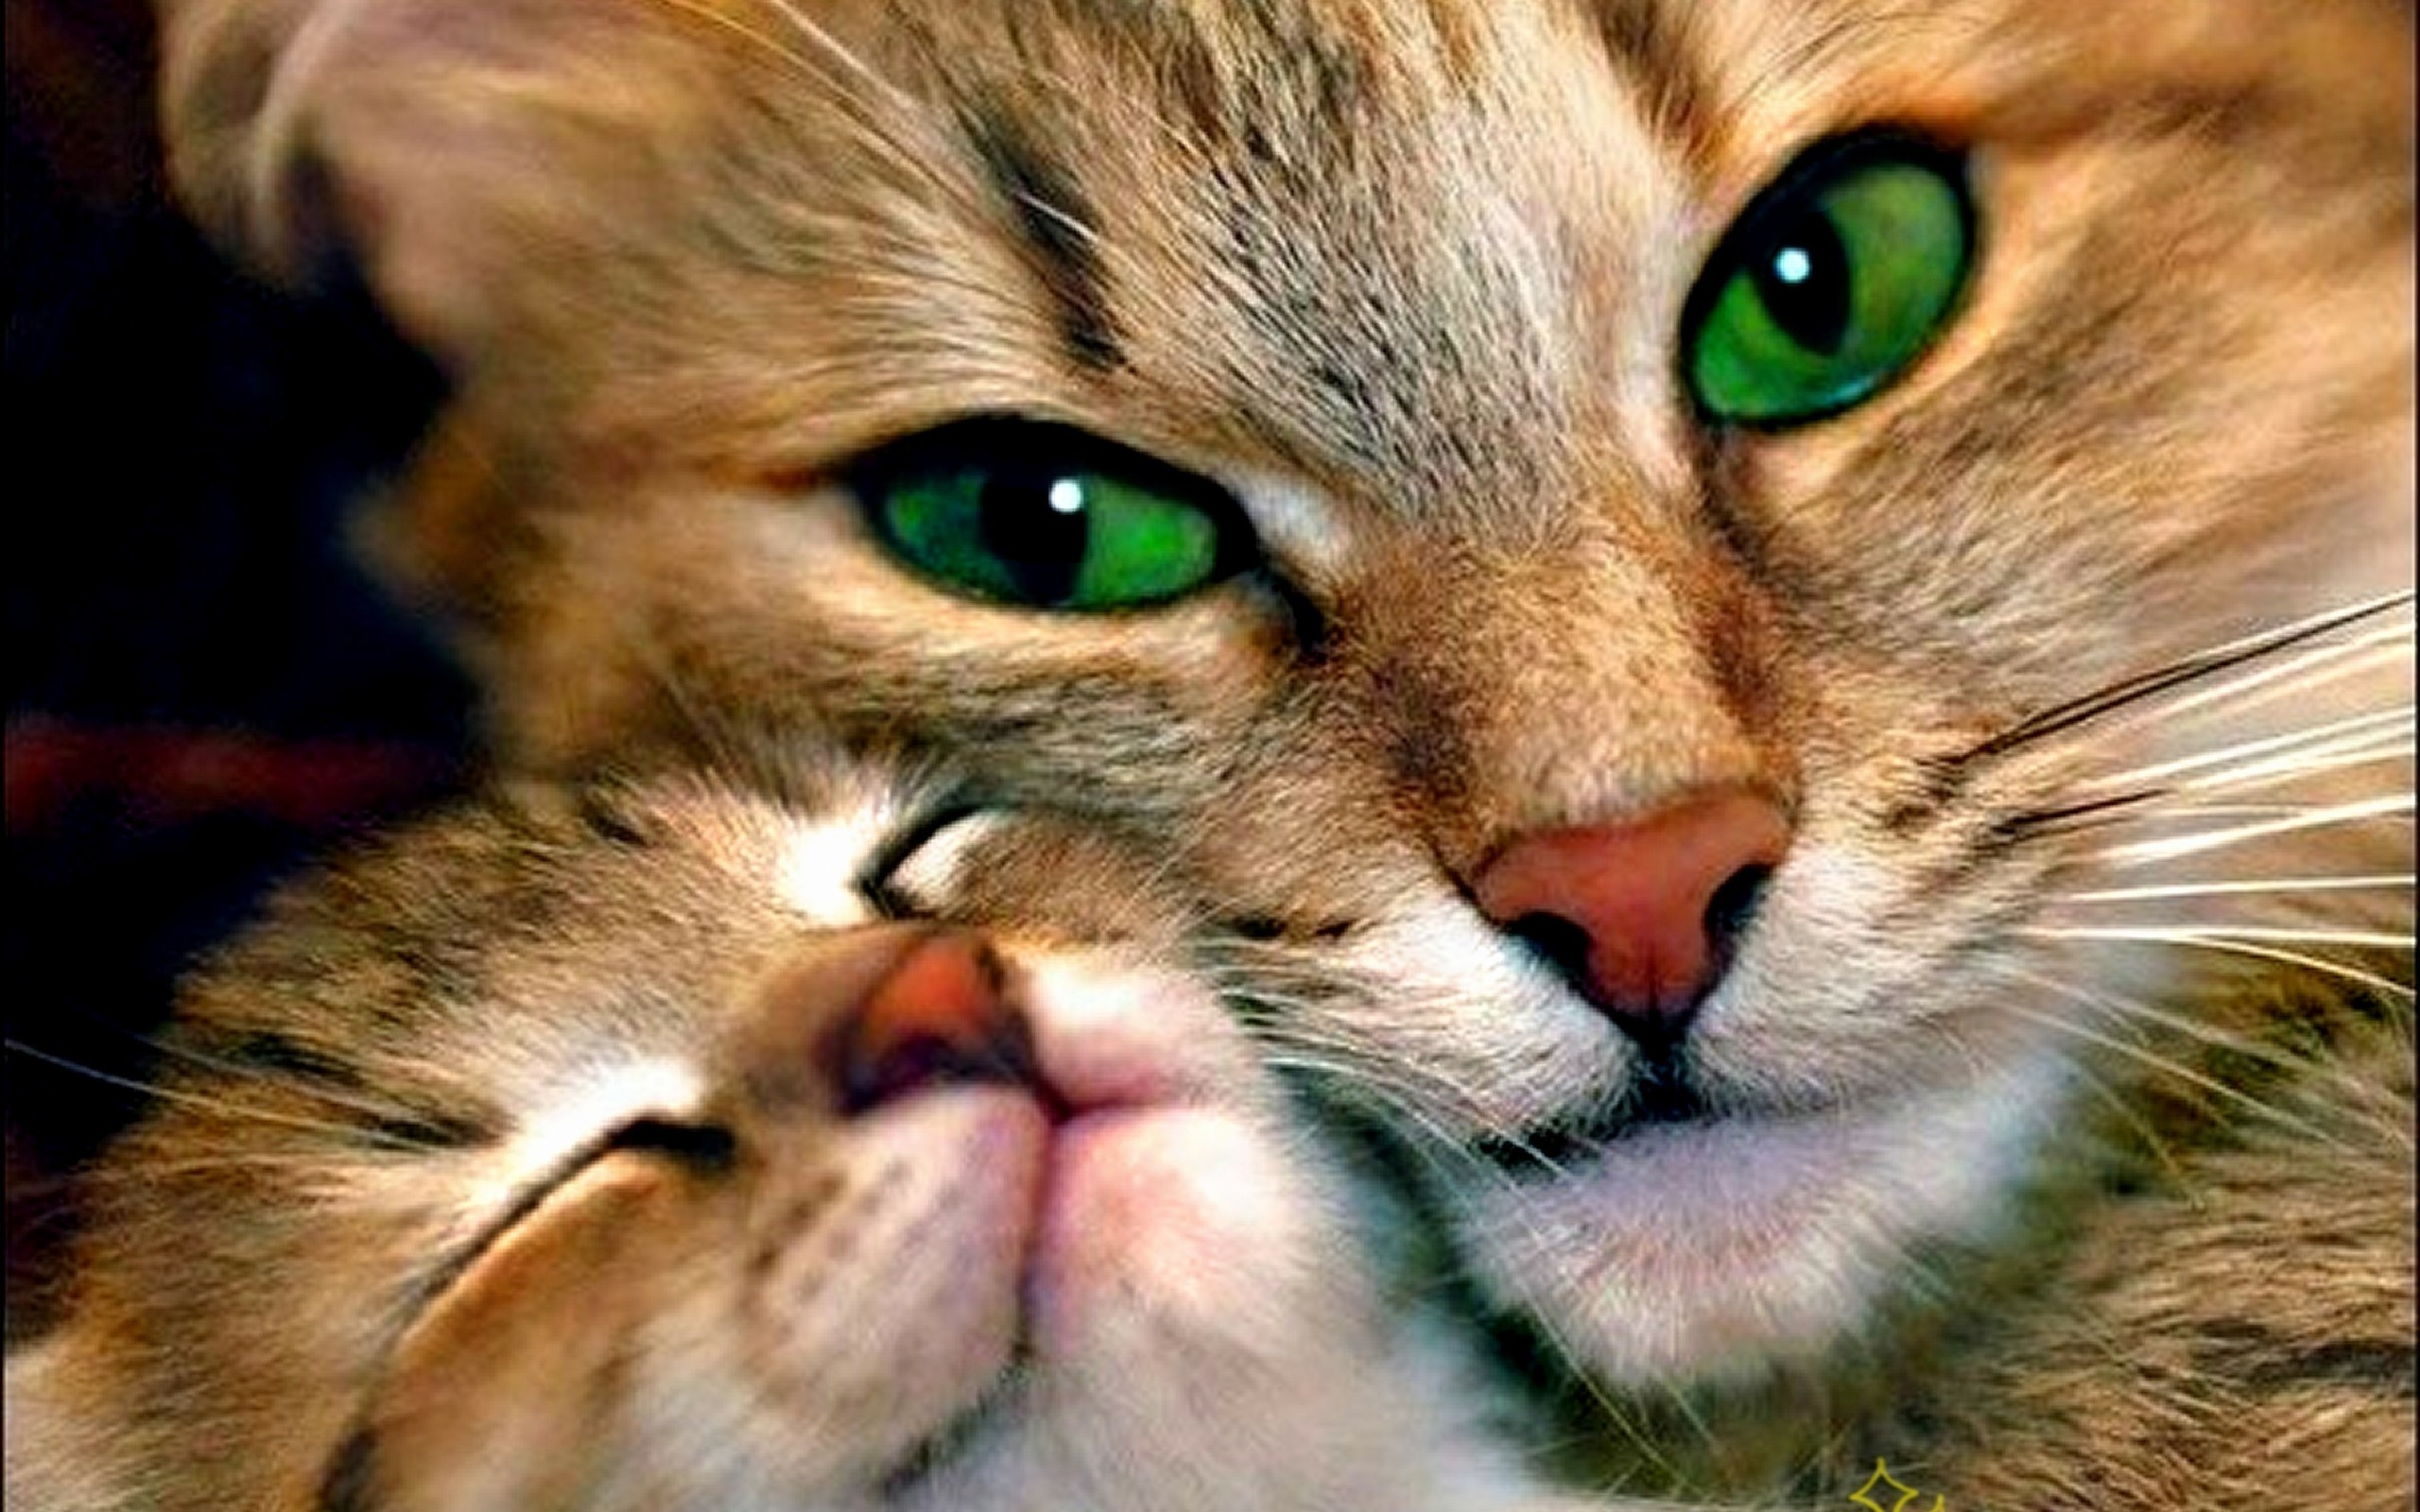 wallpaper cute cats kittens - HD Desktop Wallpapers | 4k HD